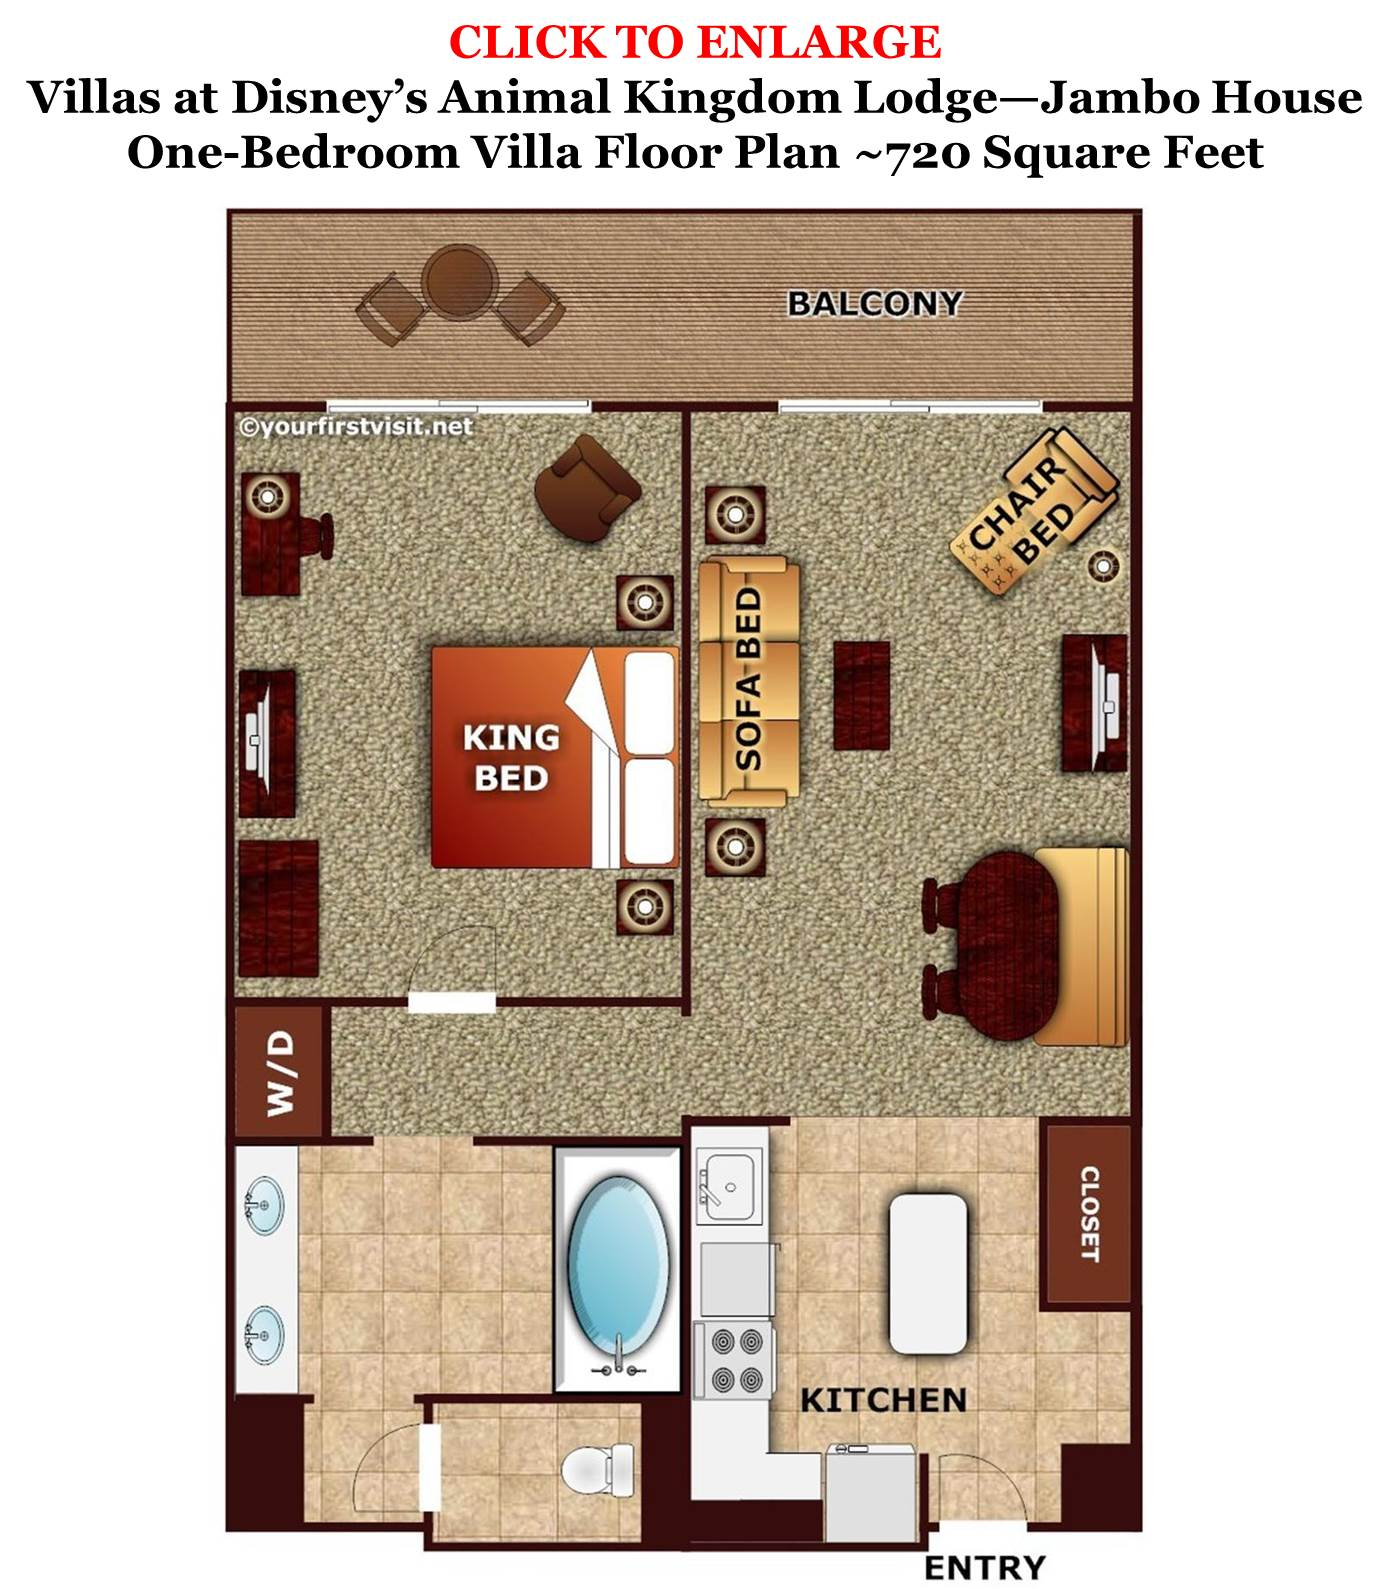 Disney 39 s jambo house one bedroom villa floor plan from - 3 bedroom grand villa disney animal kingdom ...